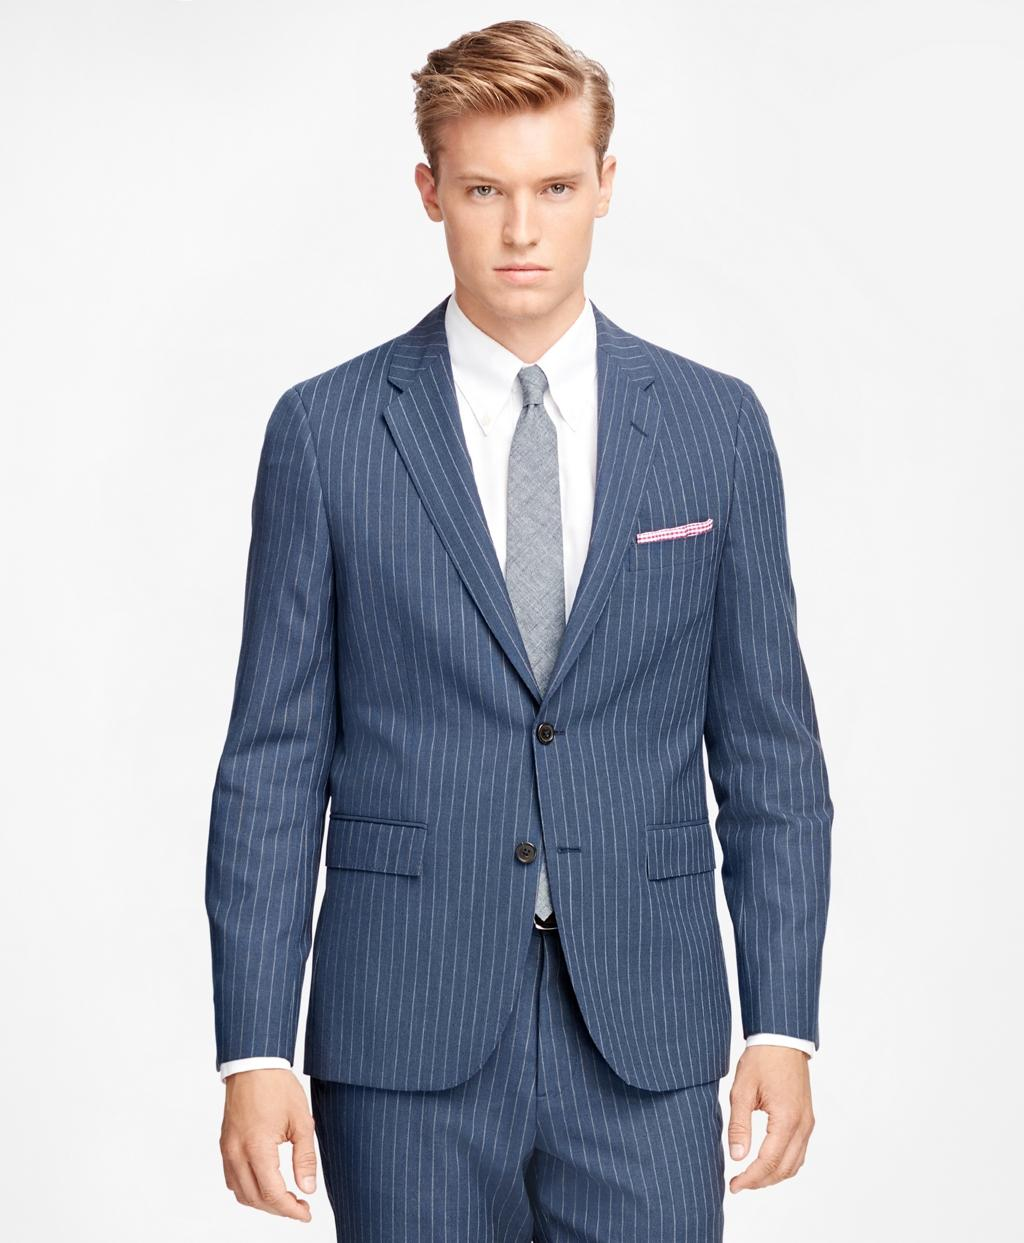 Lyst - Brooks brothers Wide Stripe Suit Jacket in Blue